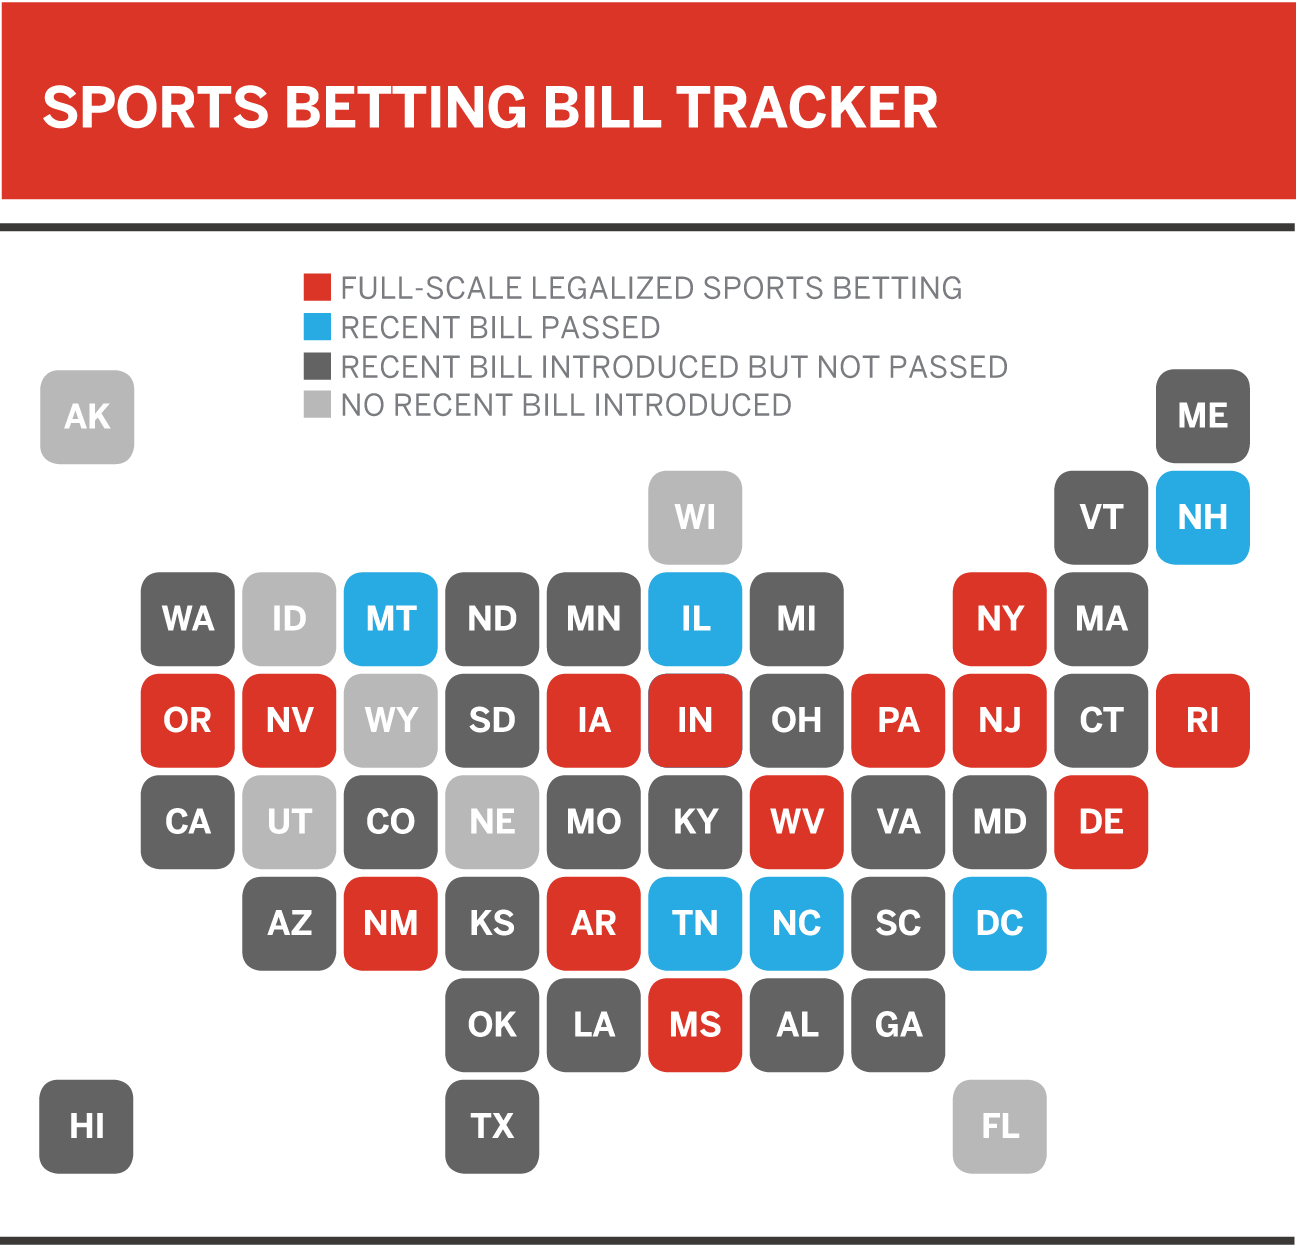 The United States of sports betting - Where all 50 states